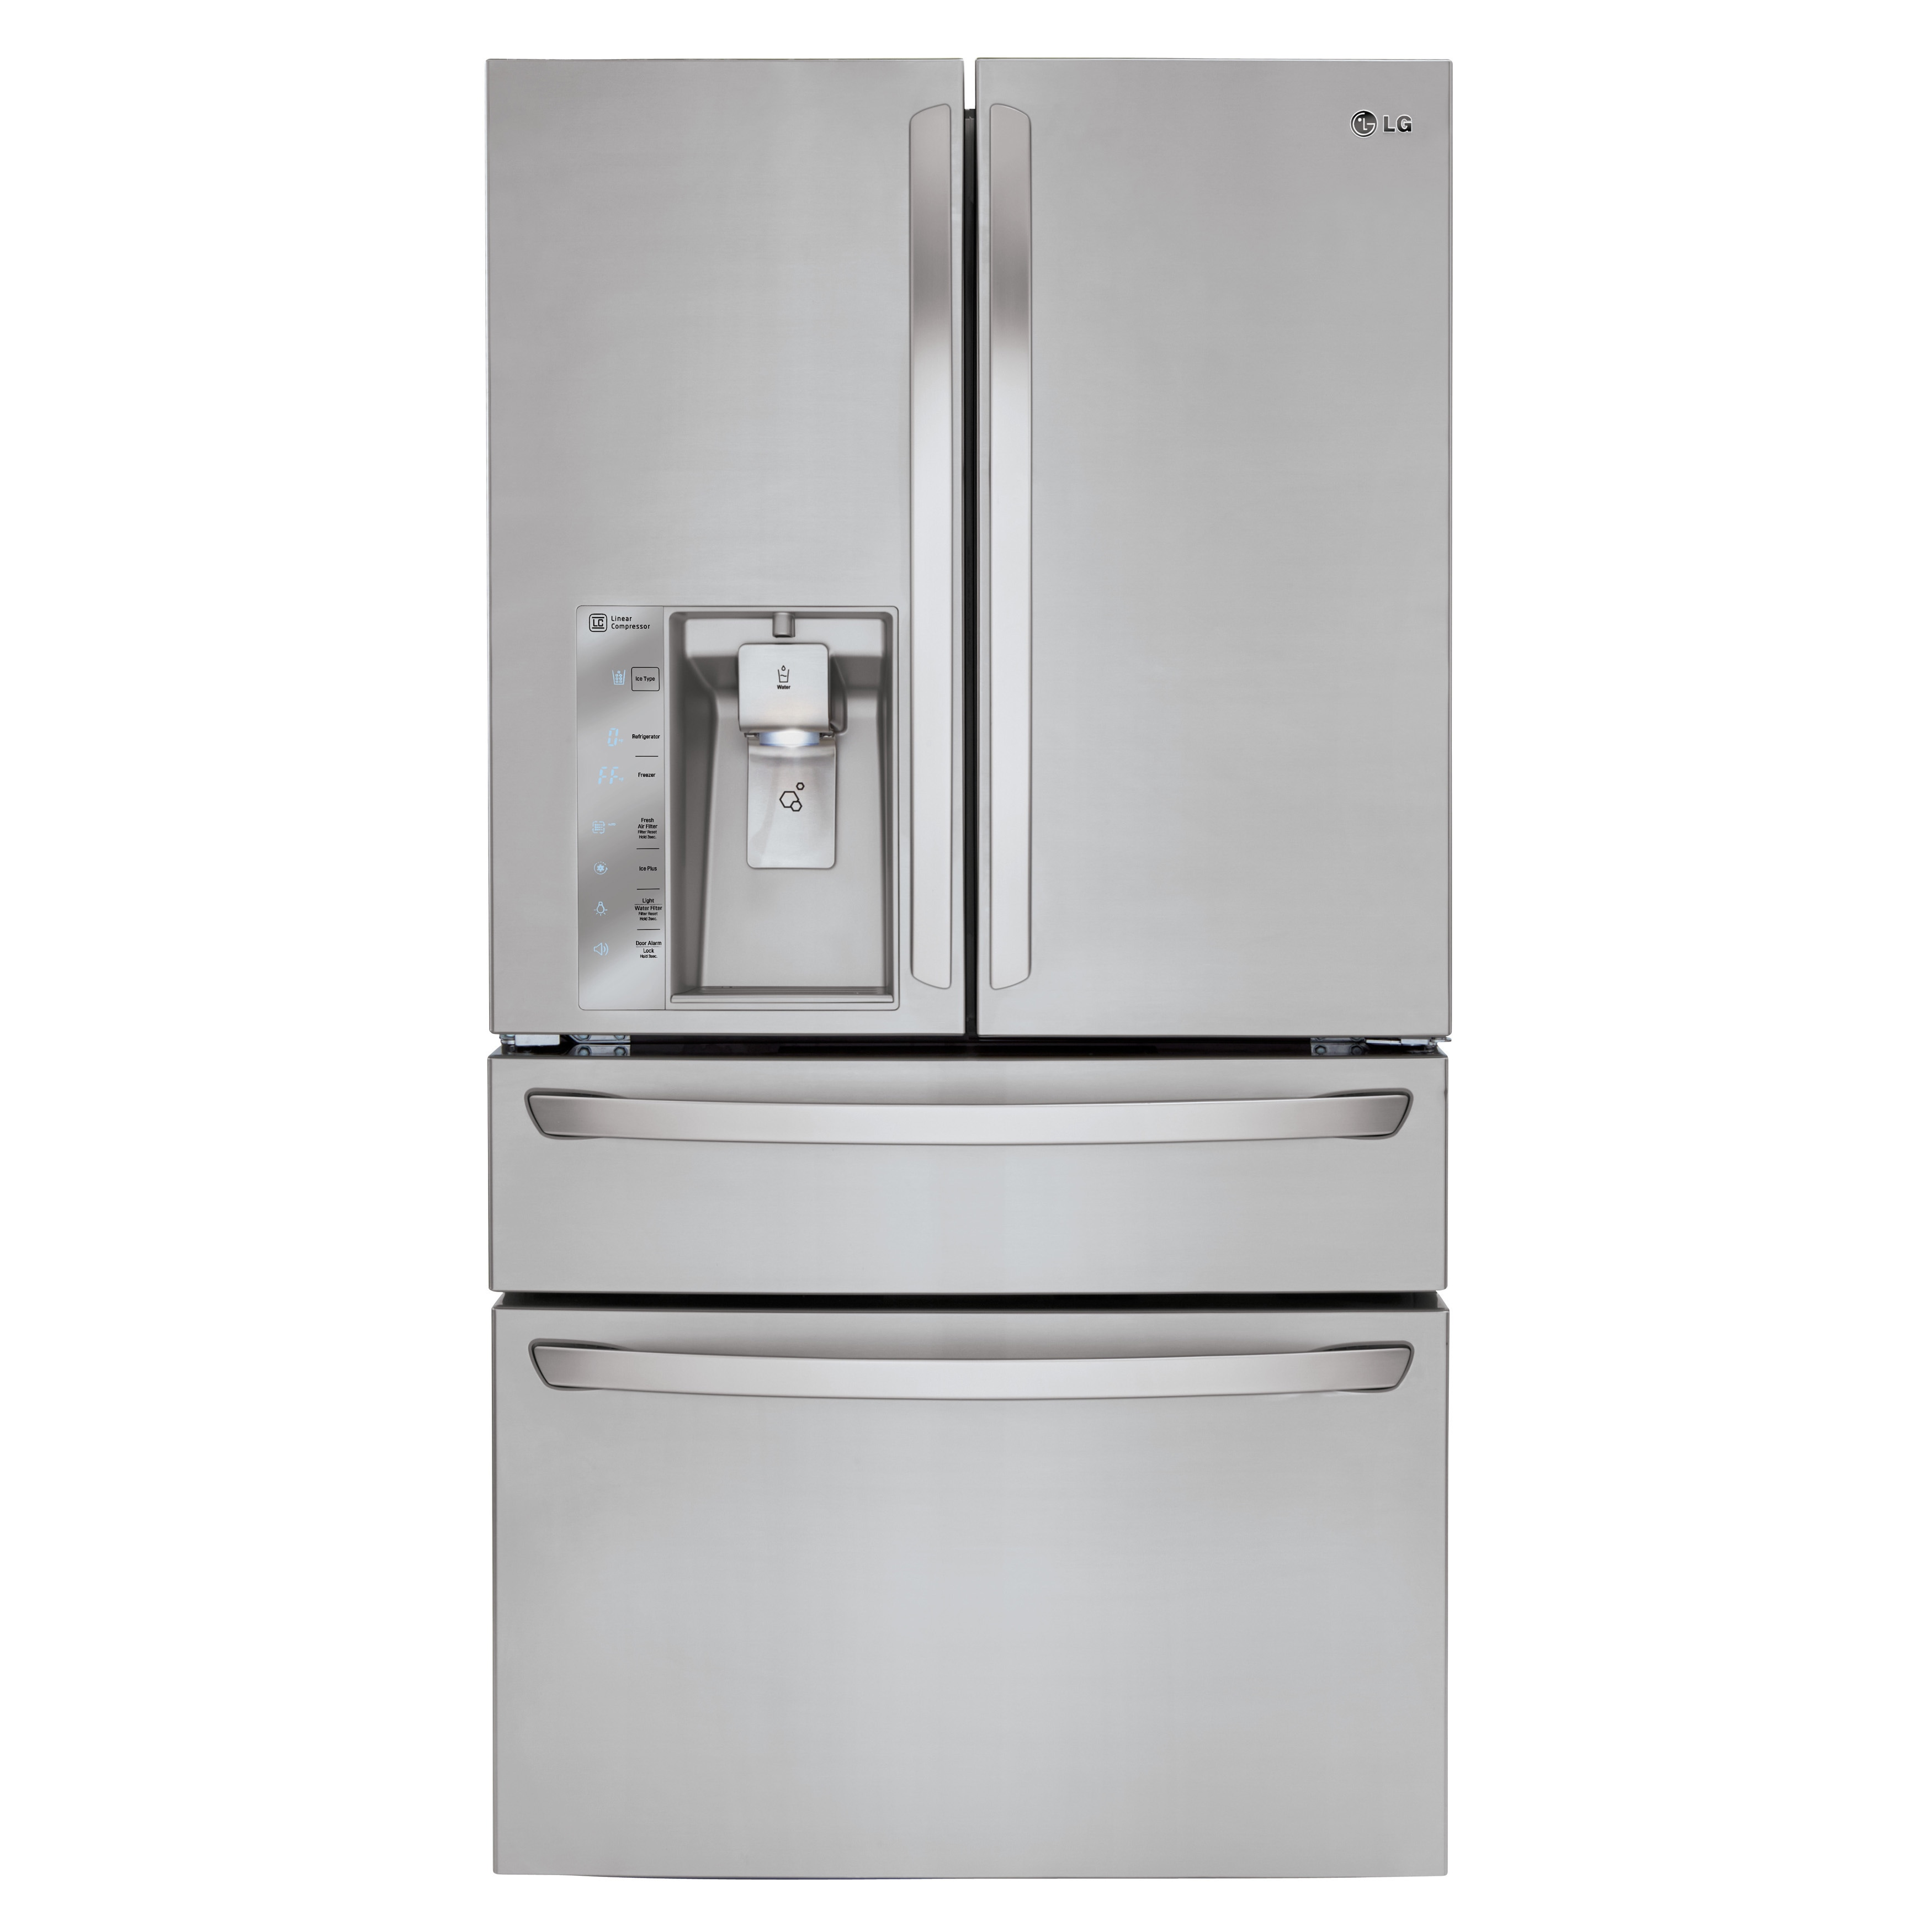 LG LMXC23746S Silver Stainless Steel 23-cubic foot Large ...